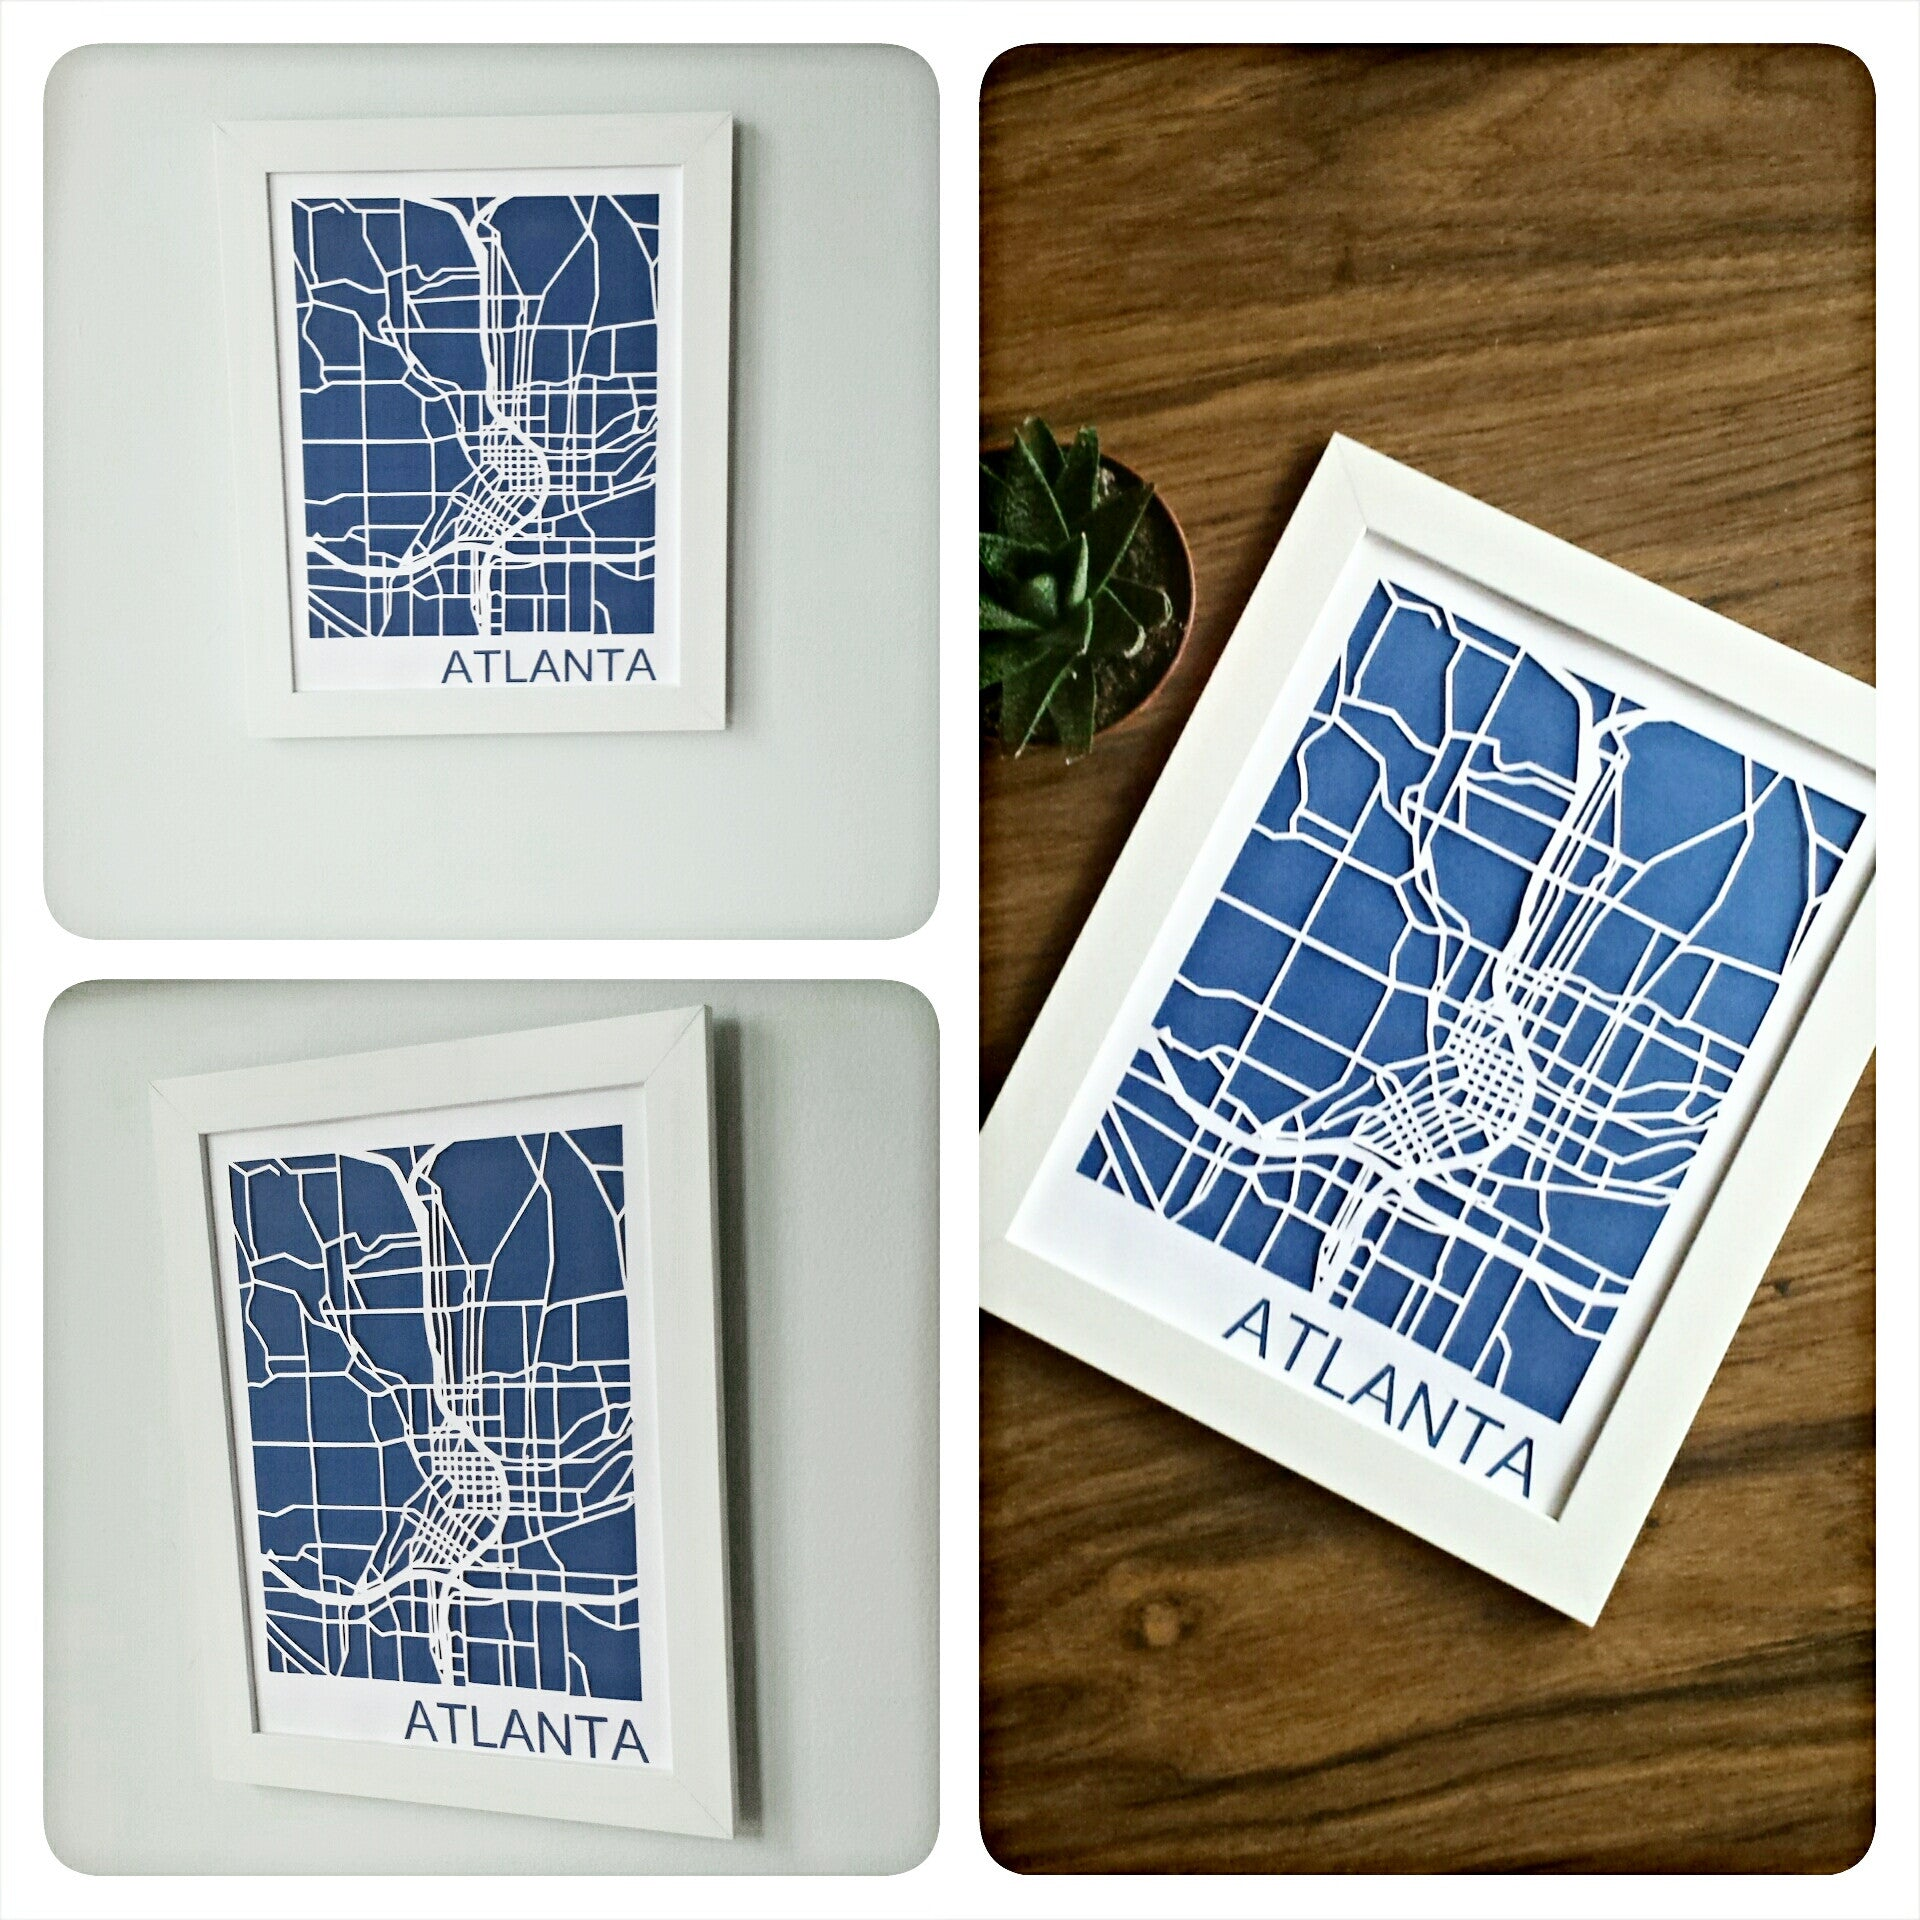 Virginia Highlands Neighborhood Paper Cut Map